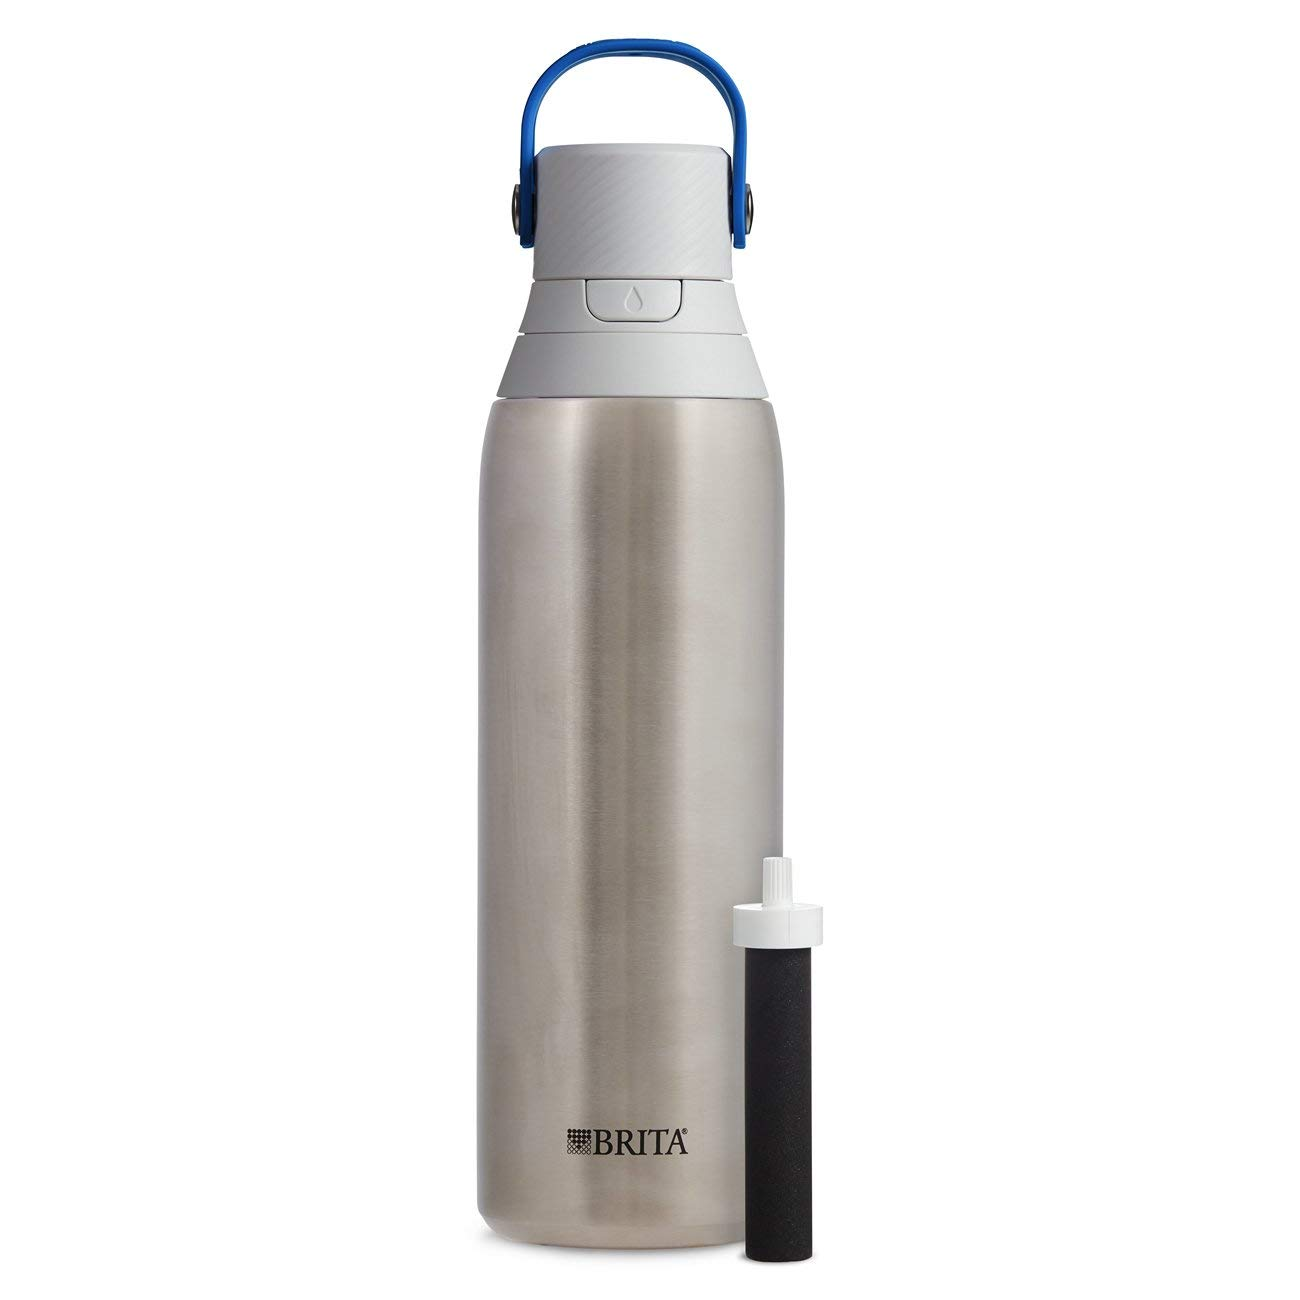 Brita 20 Ounce Premium Filtering Water Bottle With Filter Bpa Free   Stainless Steel by Brita